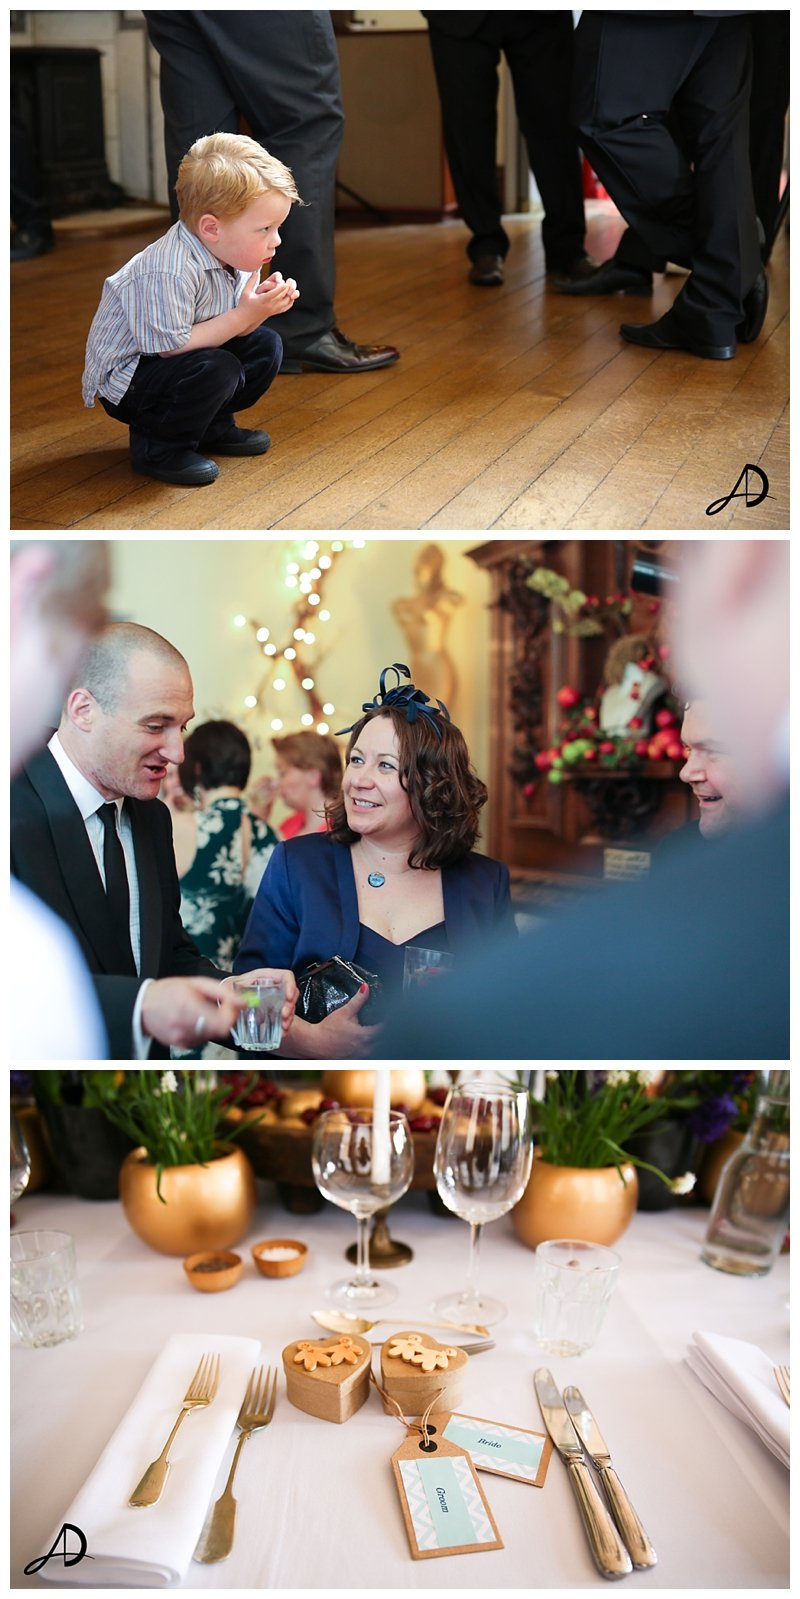 GUNTHORPE HALL WEDDING - NORFOLK AND NORWICH WEDDING PHOTOGRAPHER 2